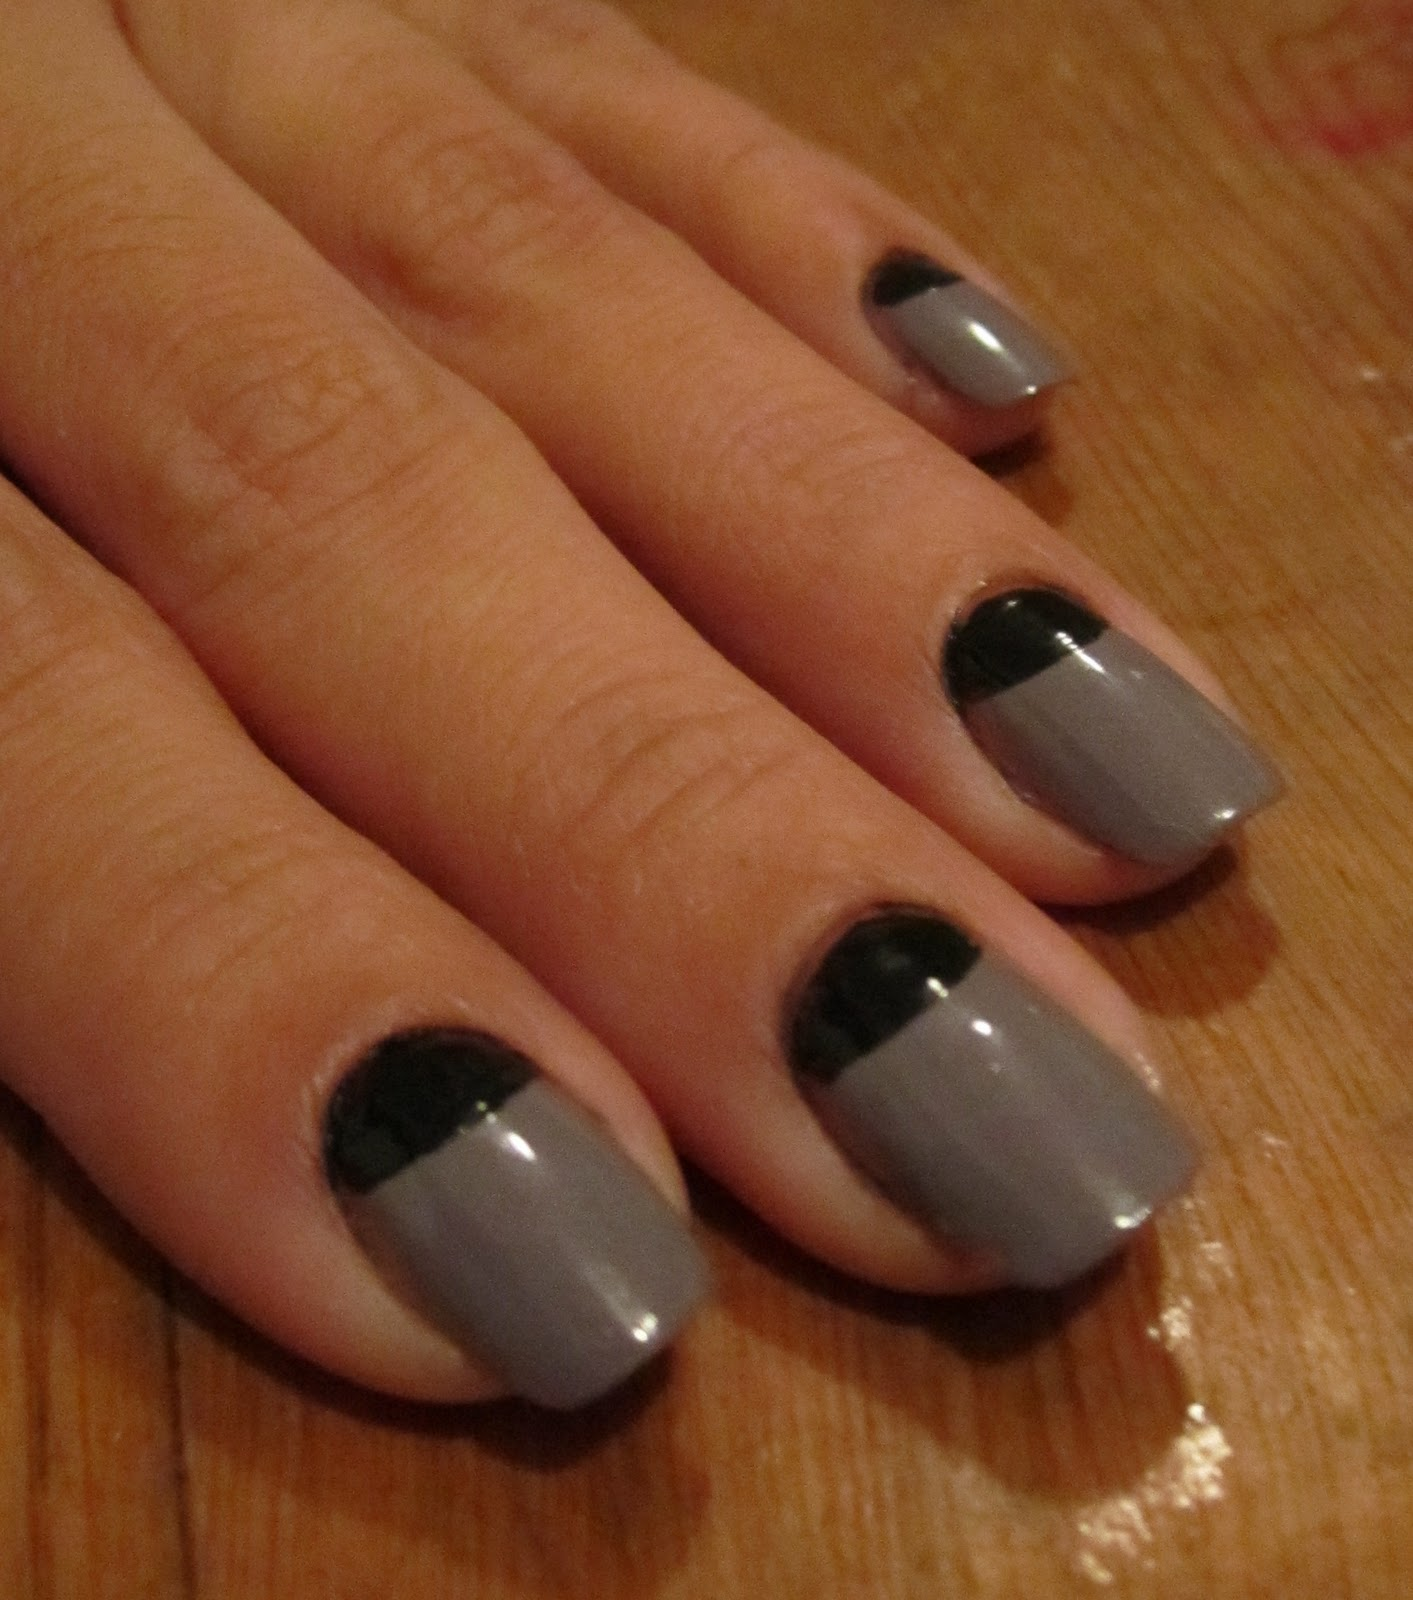 Cult Nails Blog: Half Moon Manicure